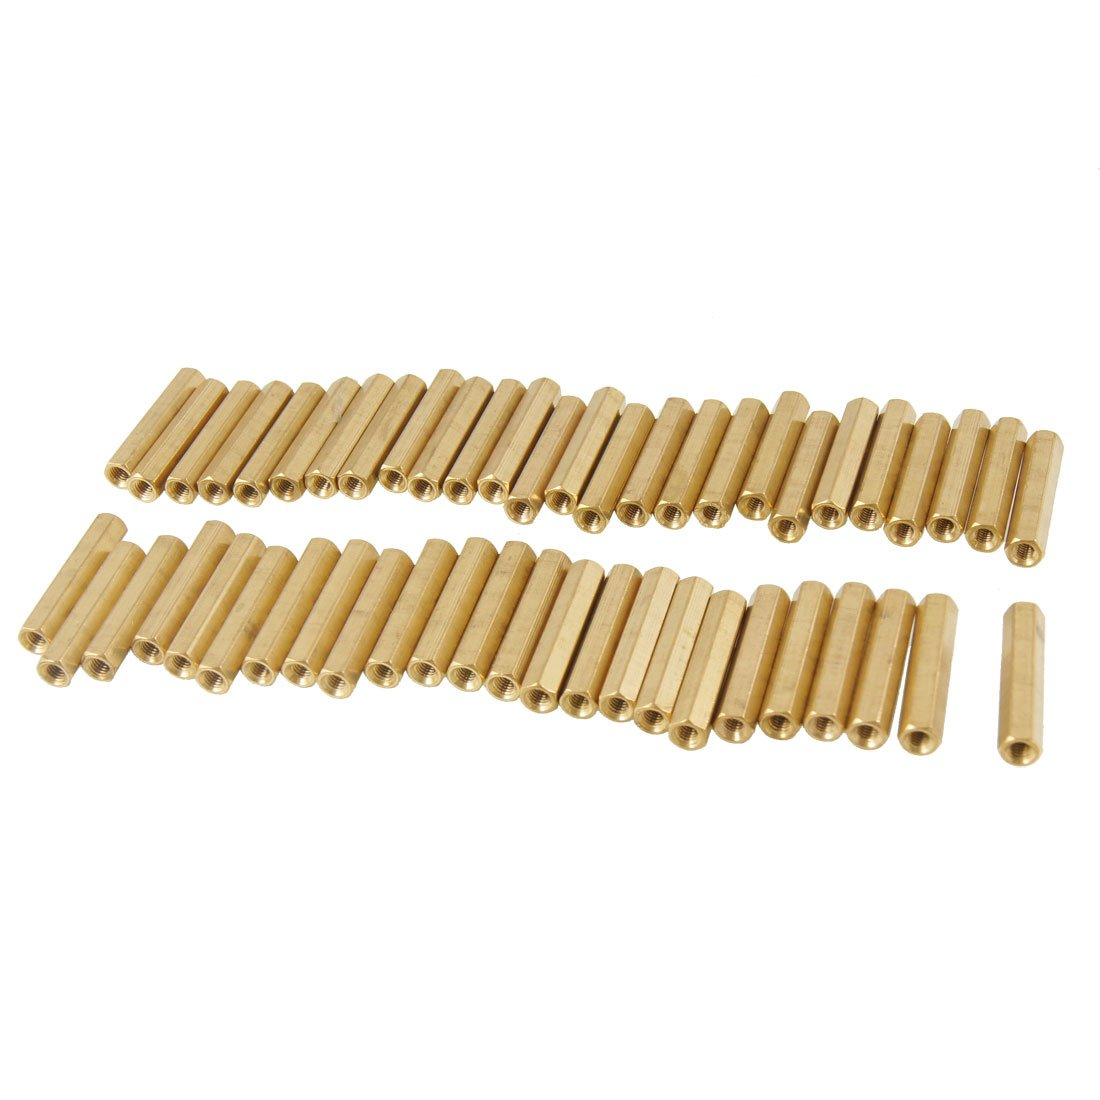 50 Pcs M3X25mm Hexagonal Head Female Thread PCB Brass Standoff Spacers Sourcingmap a12092200ux0074